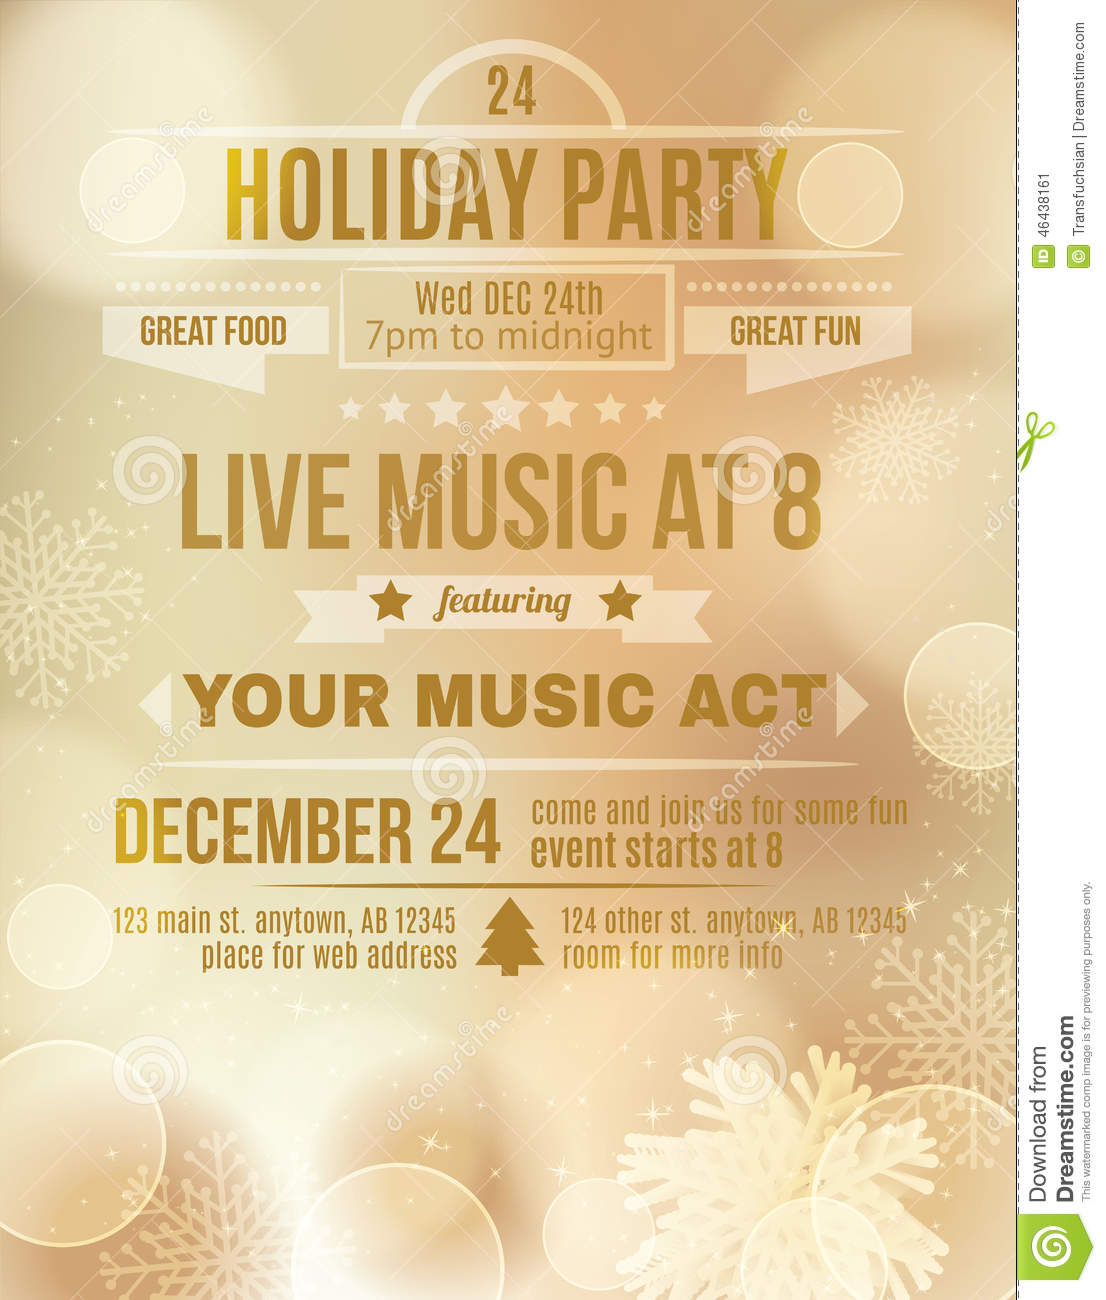 Elegant Christmas Party Invitation Template – Holiday Party Flyer Template